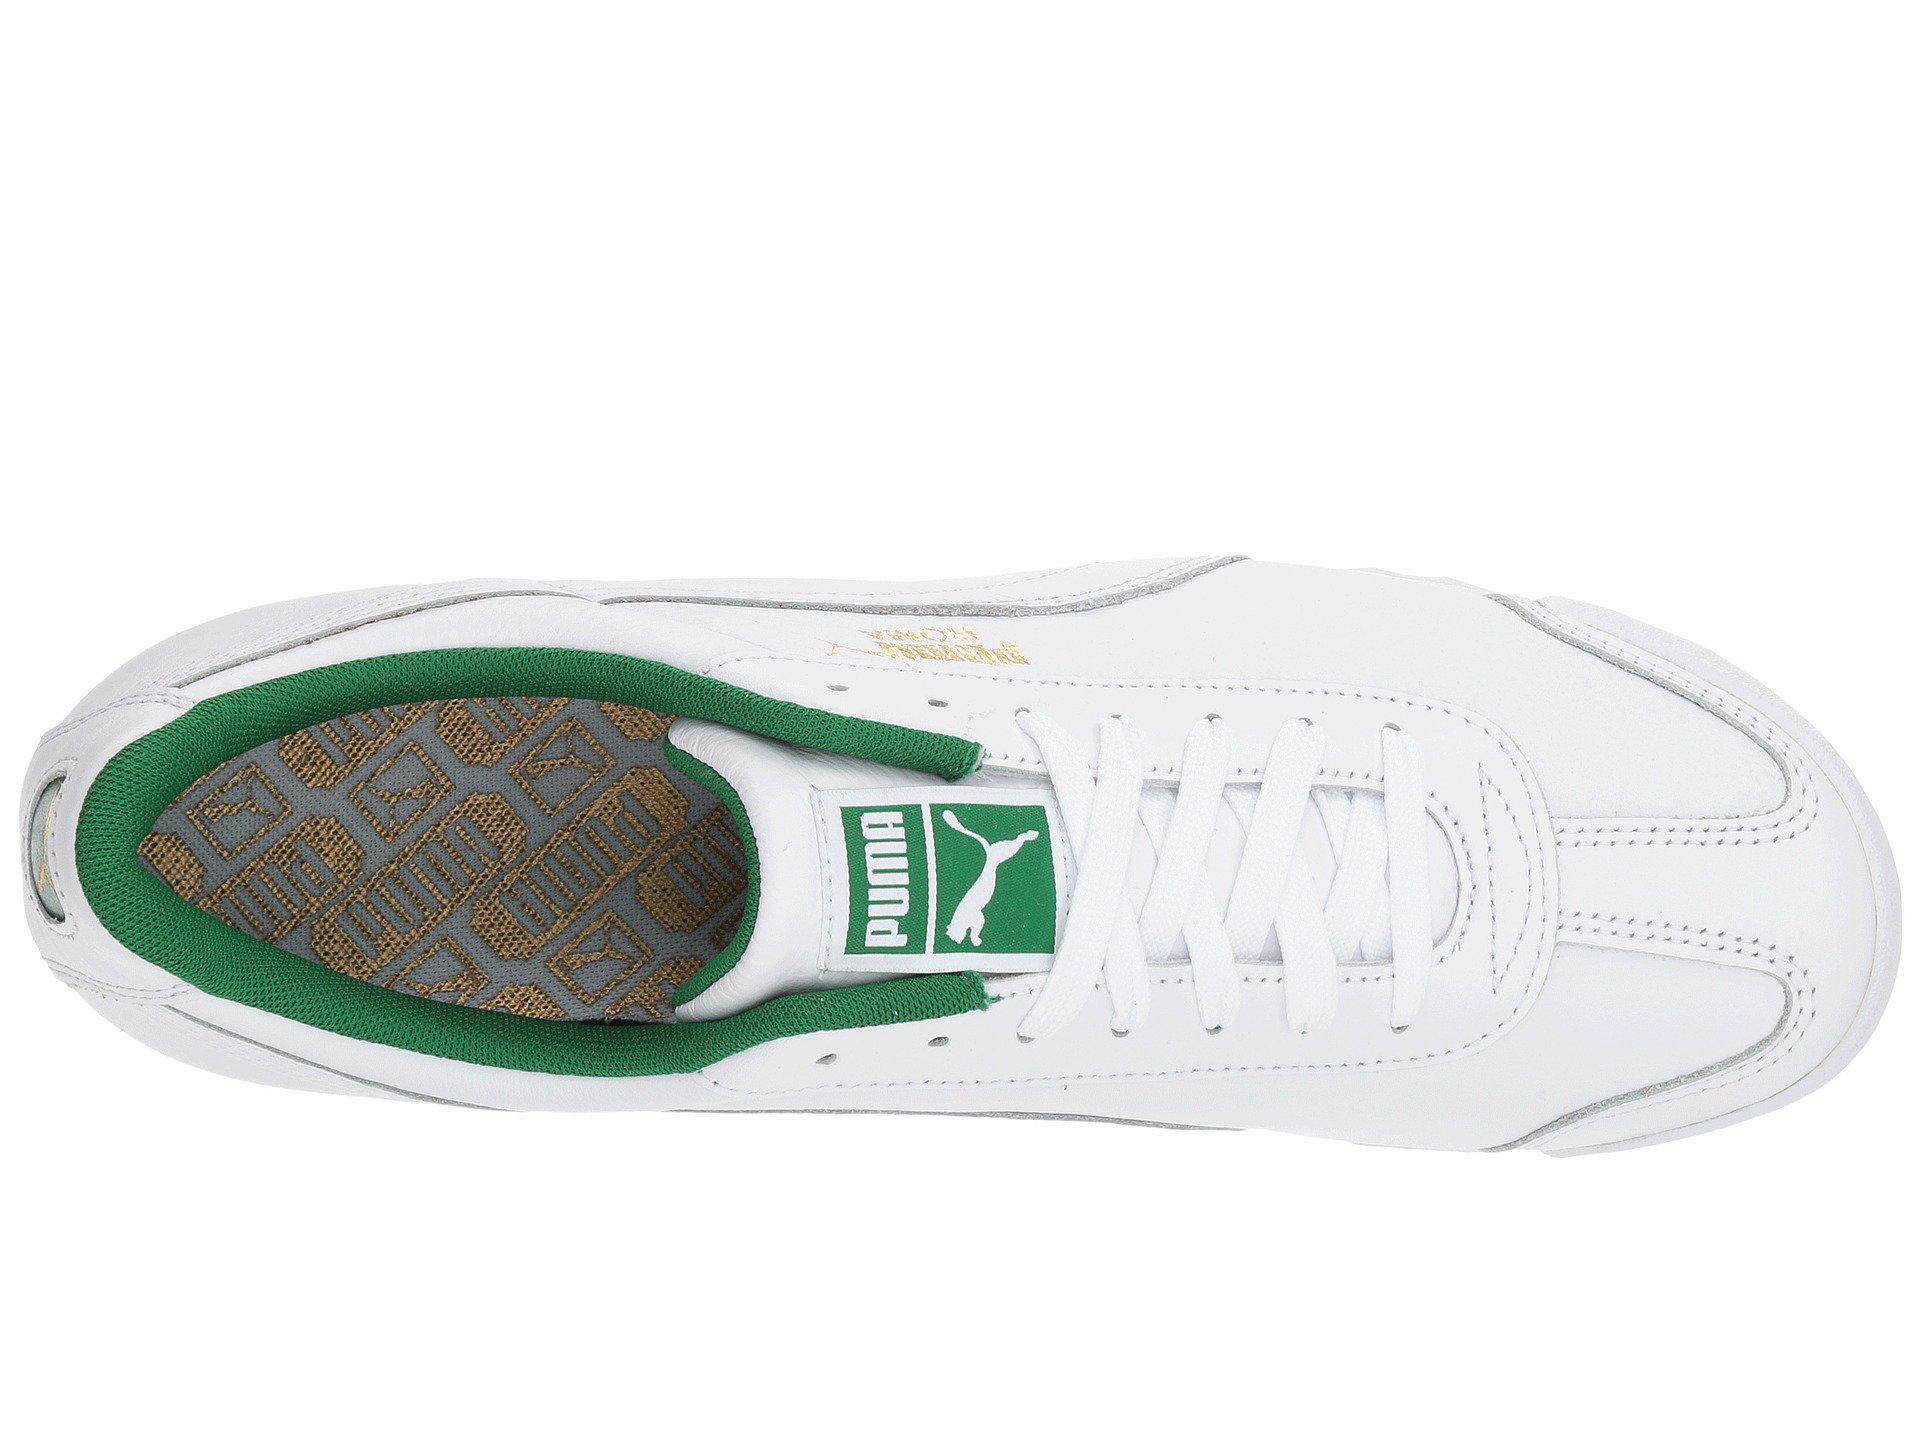 96989834f6a7e PUMA Roma Classic ( White/amazon Green) Lace Up Casual Shoes for men